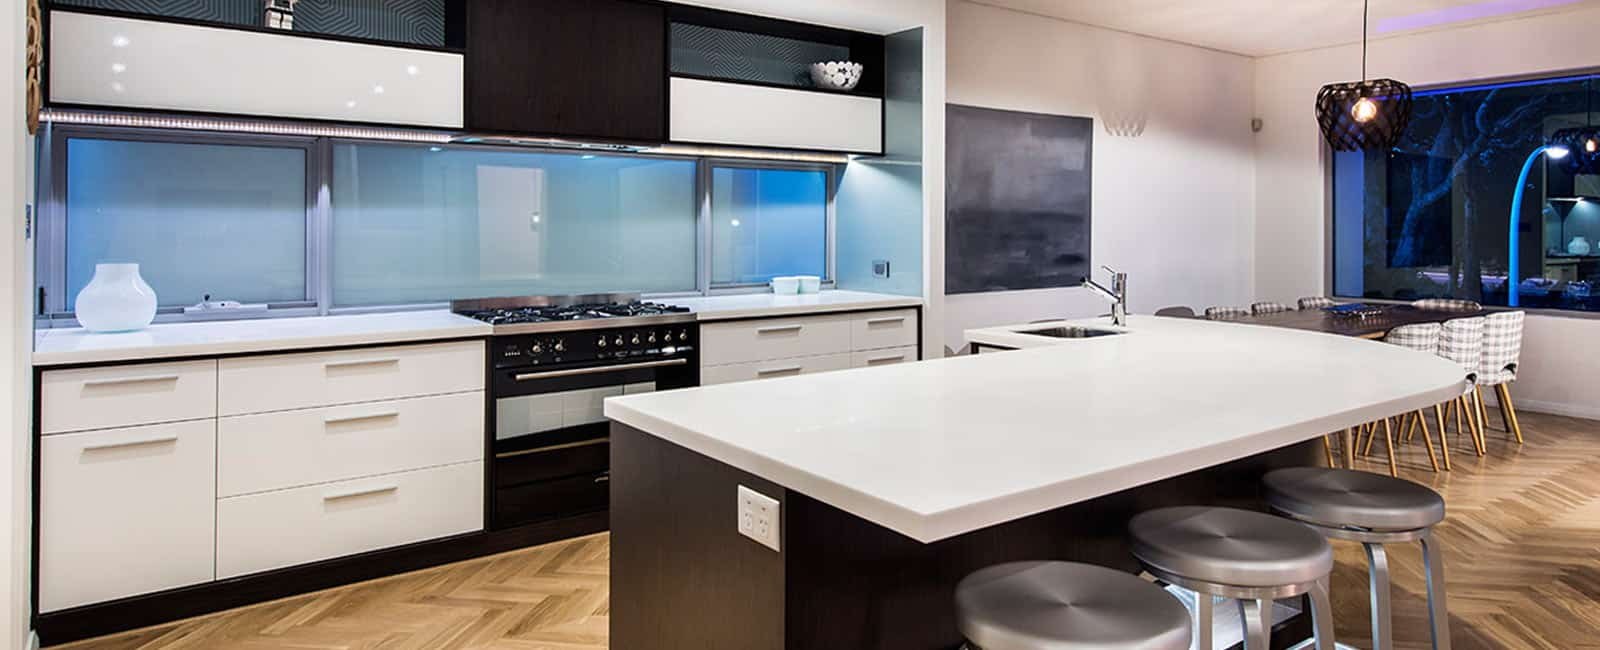 Uncategorized Image Of Kitchen Design kitchens perth kitchen design renovations professionals wa